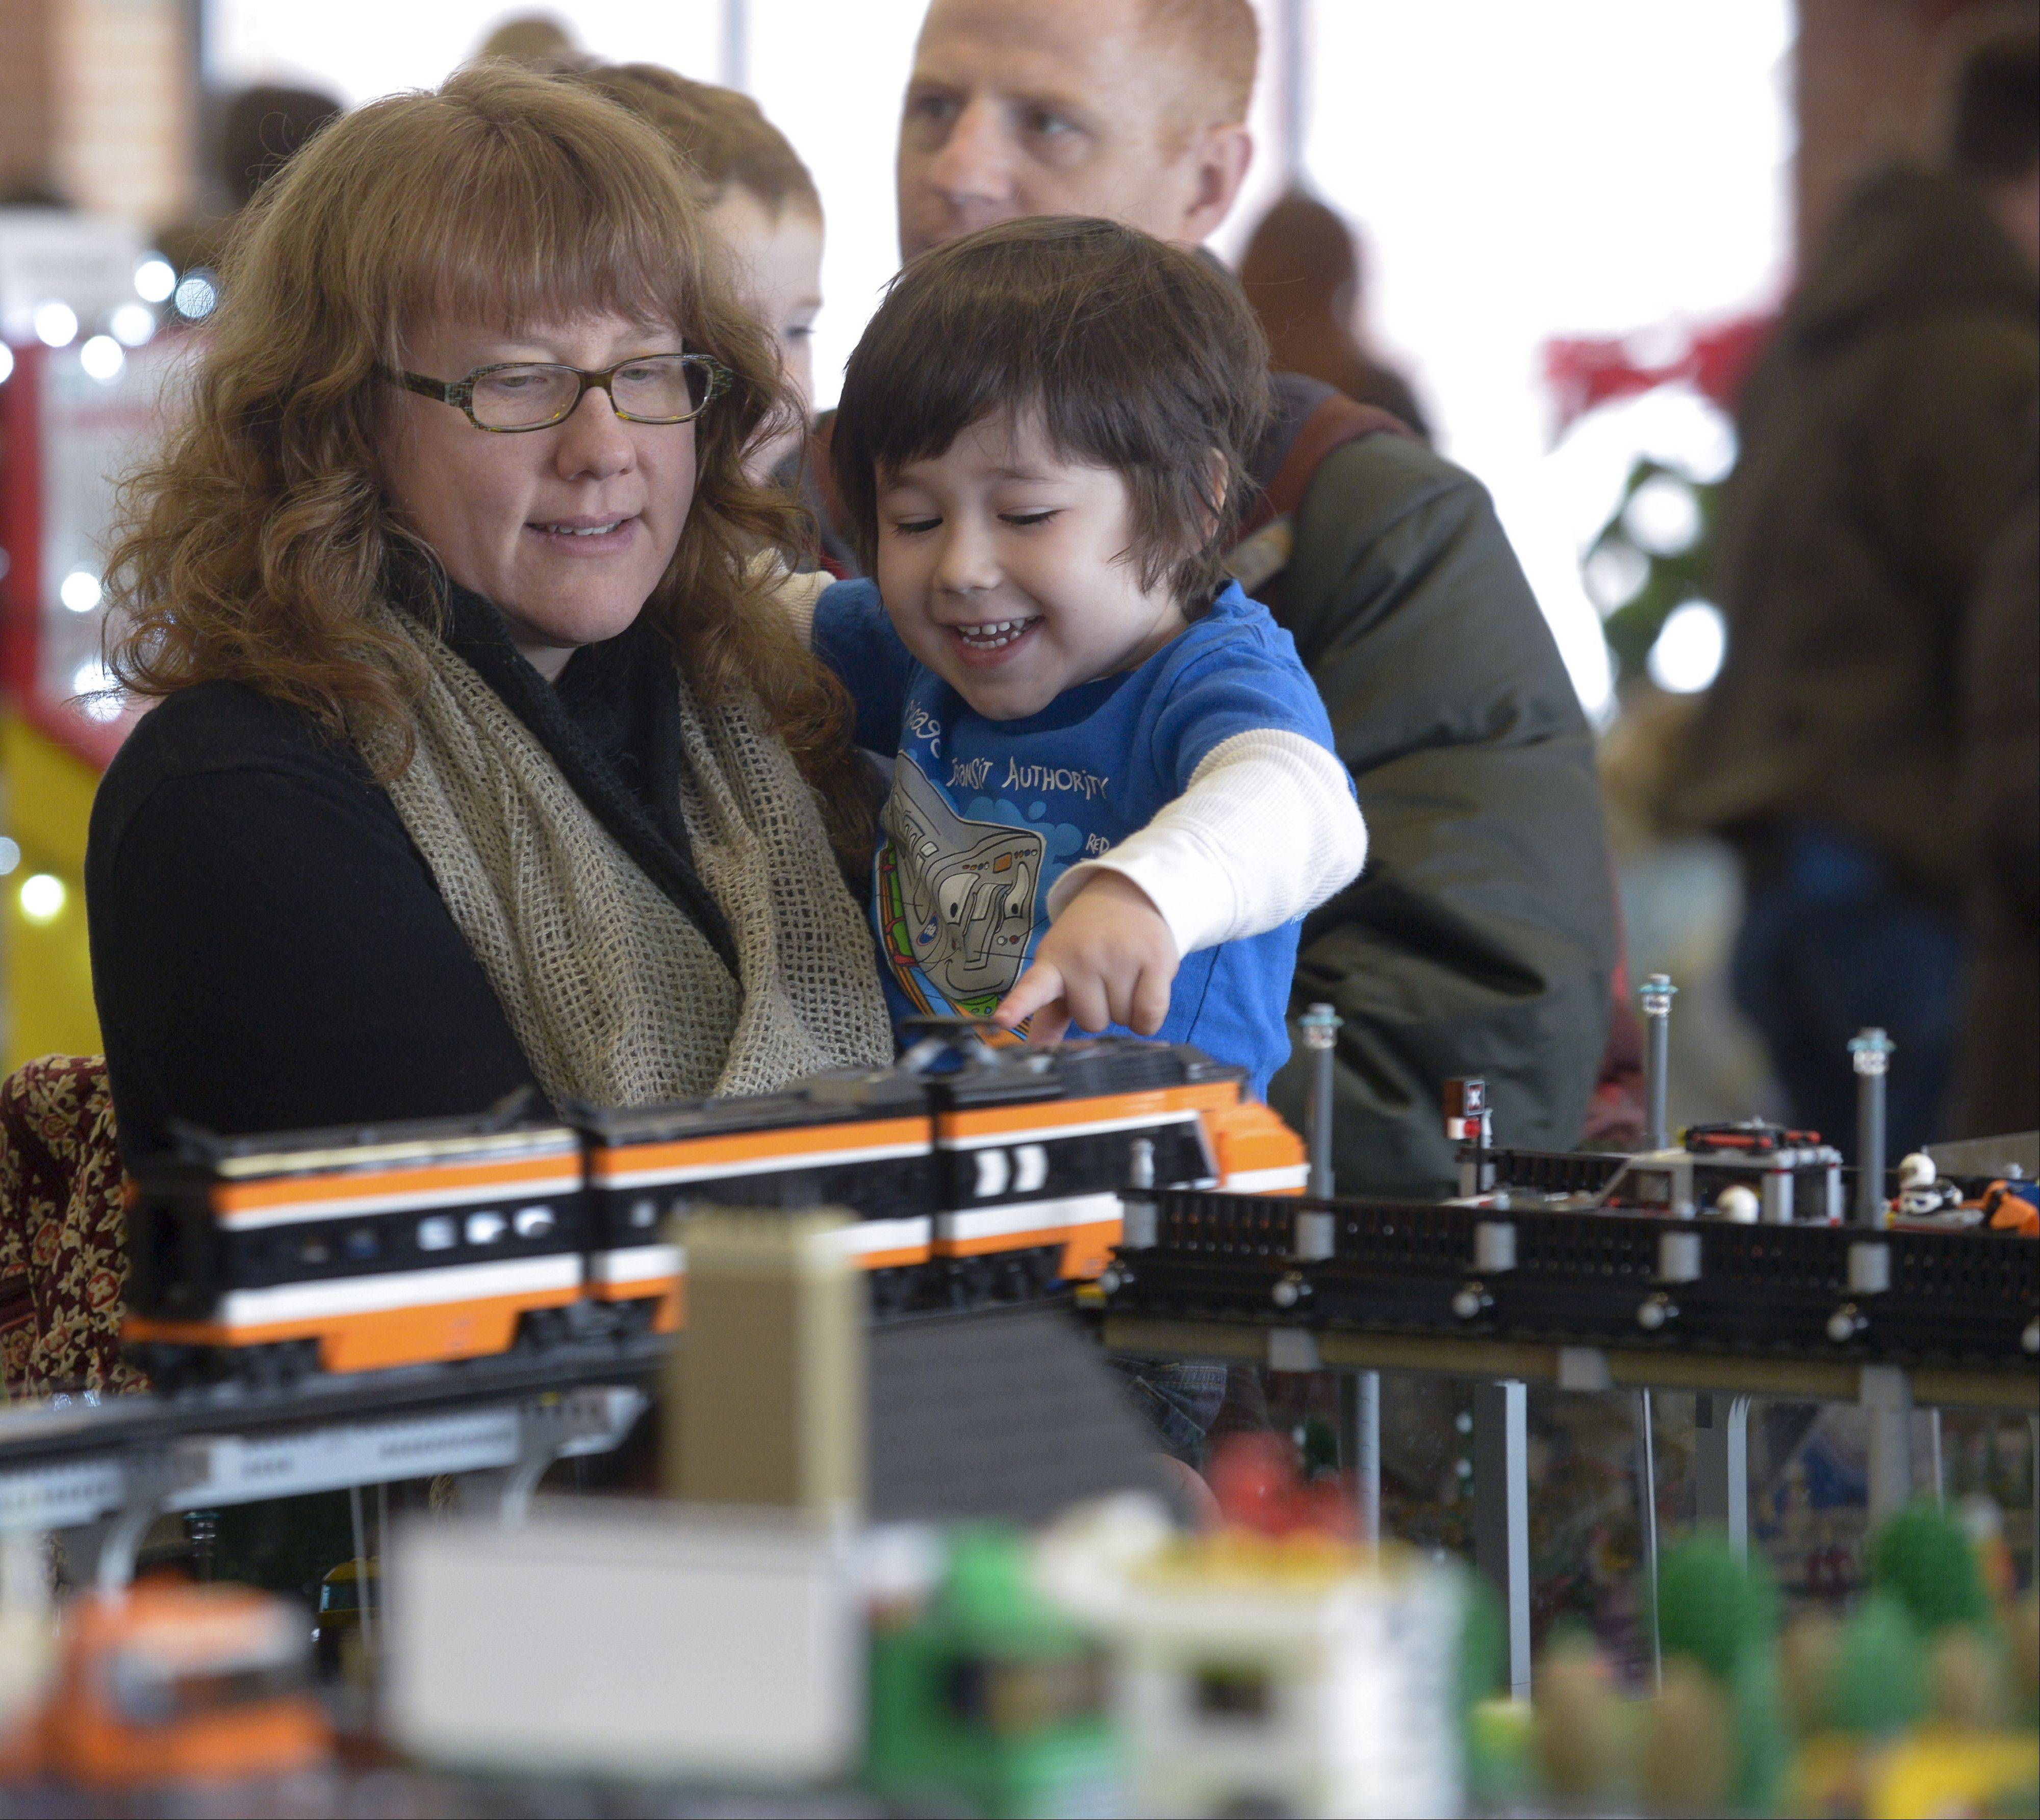 Elizabeth Cruz of Chicago holds her son Noah, 4 as they check out some of the Lego displays setup by the Northern Illinois Lego Train Club during their 12th annual Lego Train Show and Party on Sunday at Wheaton's Cantigny Park.